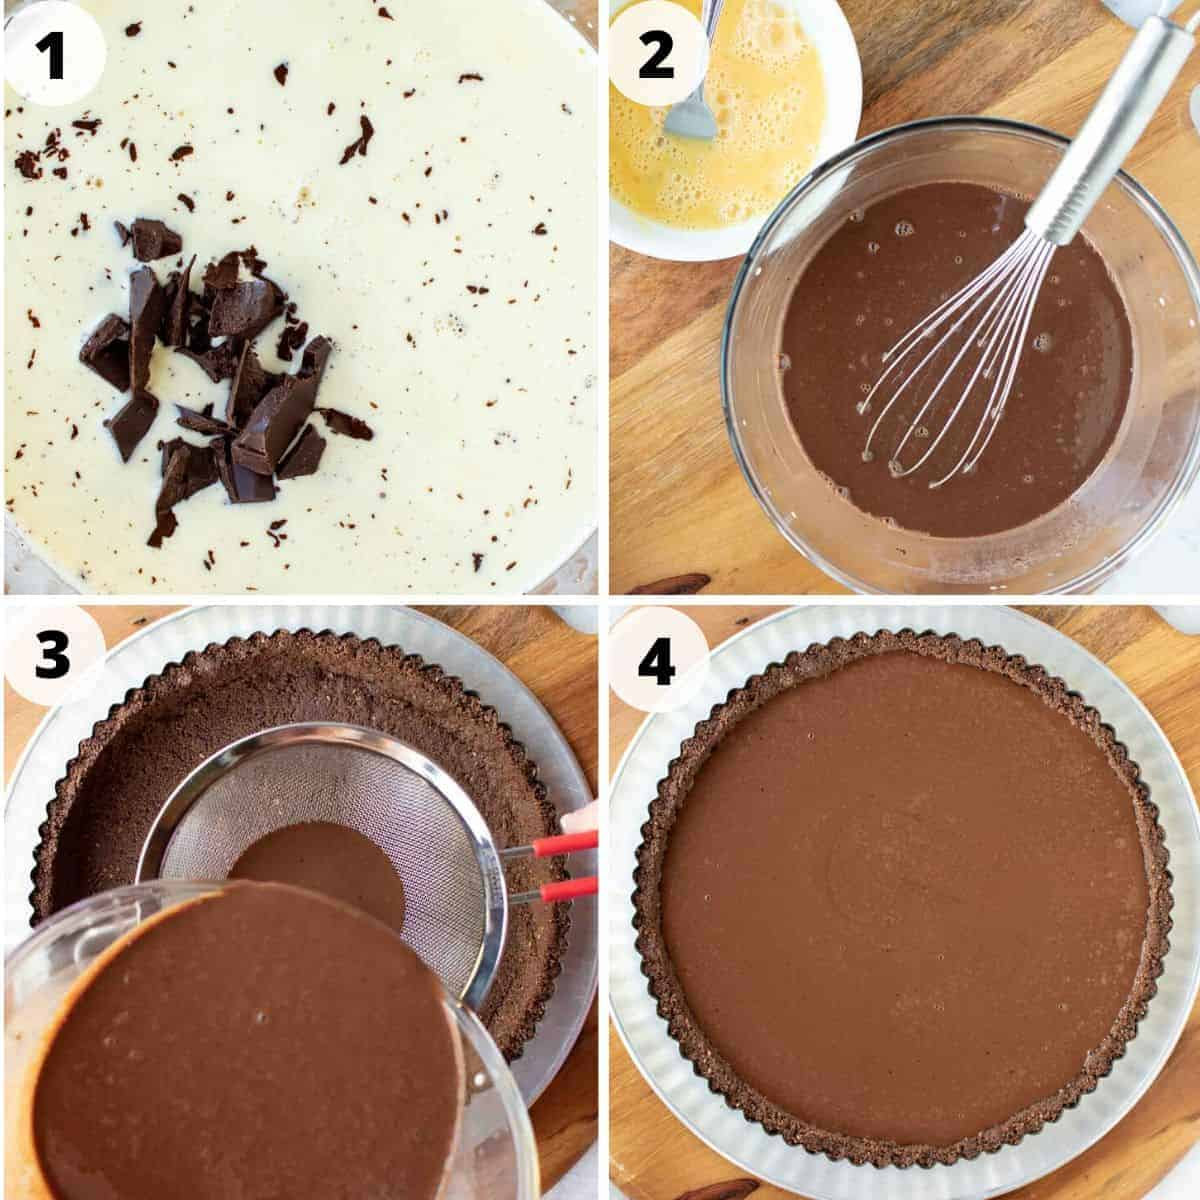 four images showing preparation of chocolate tart filling.